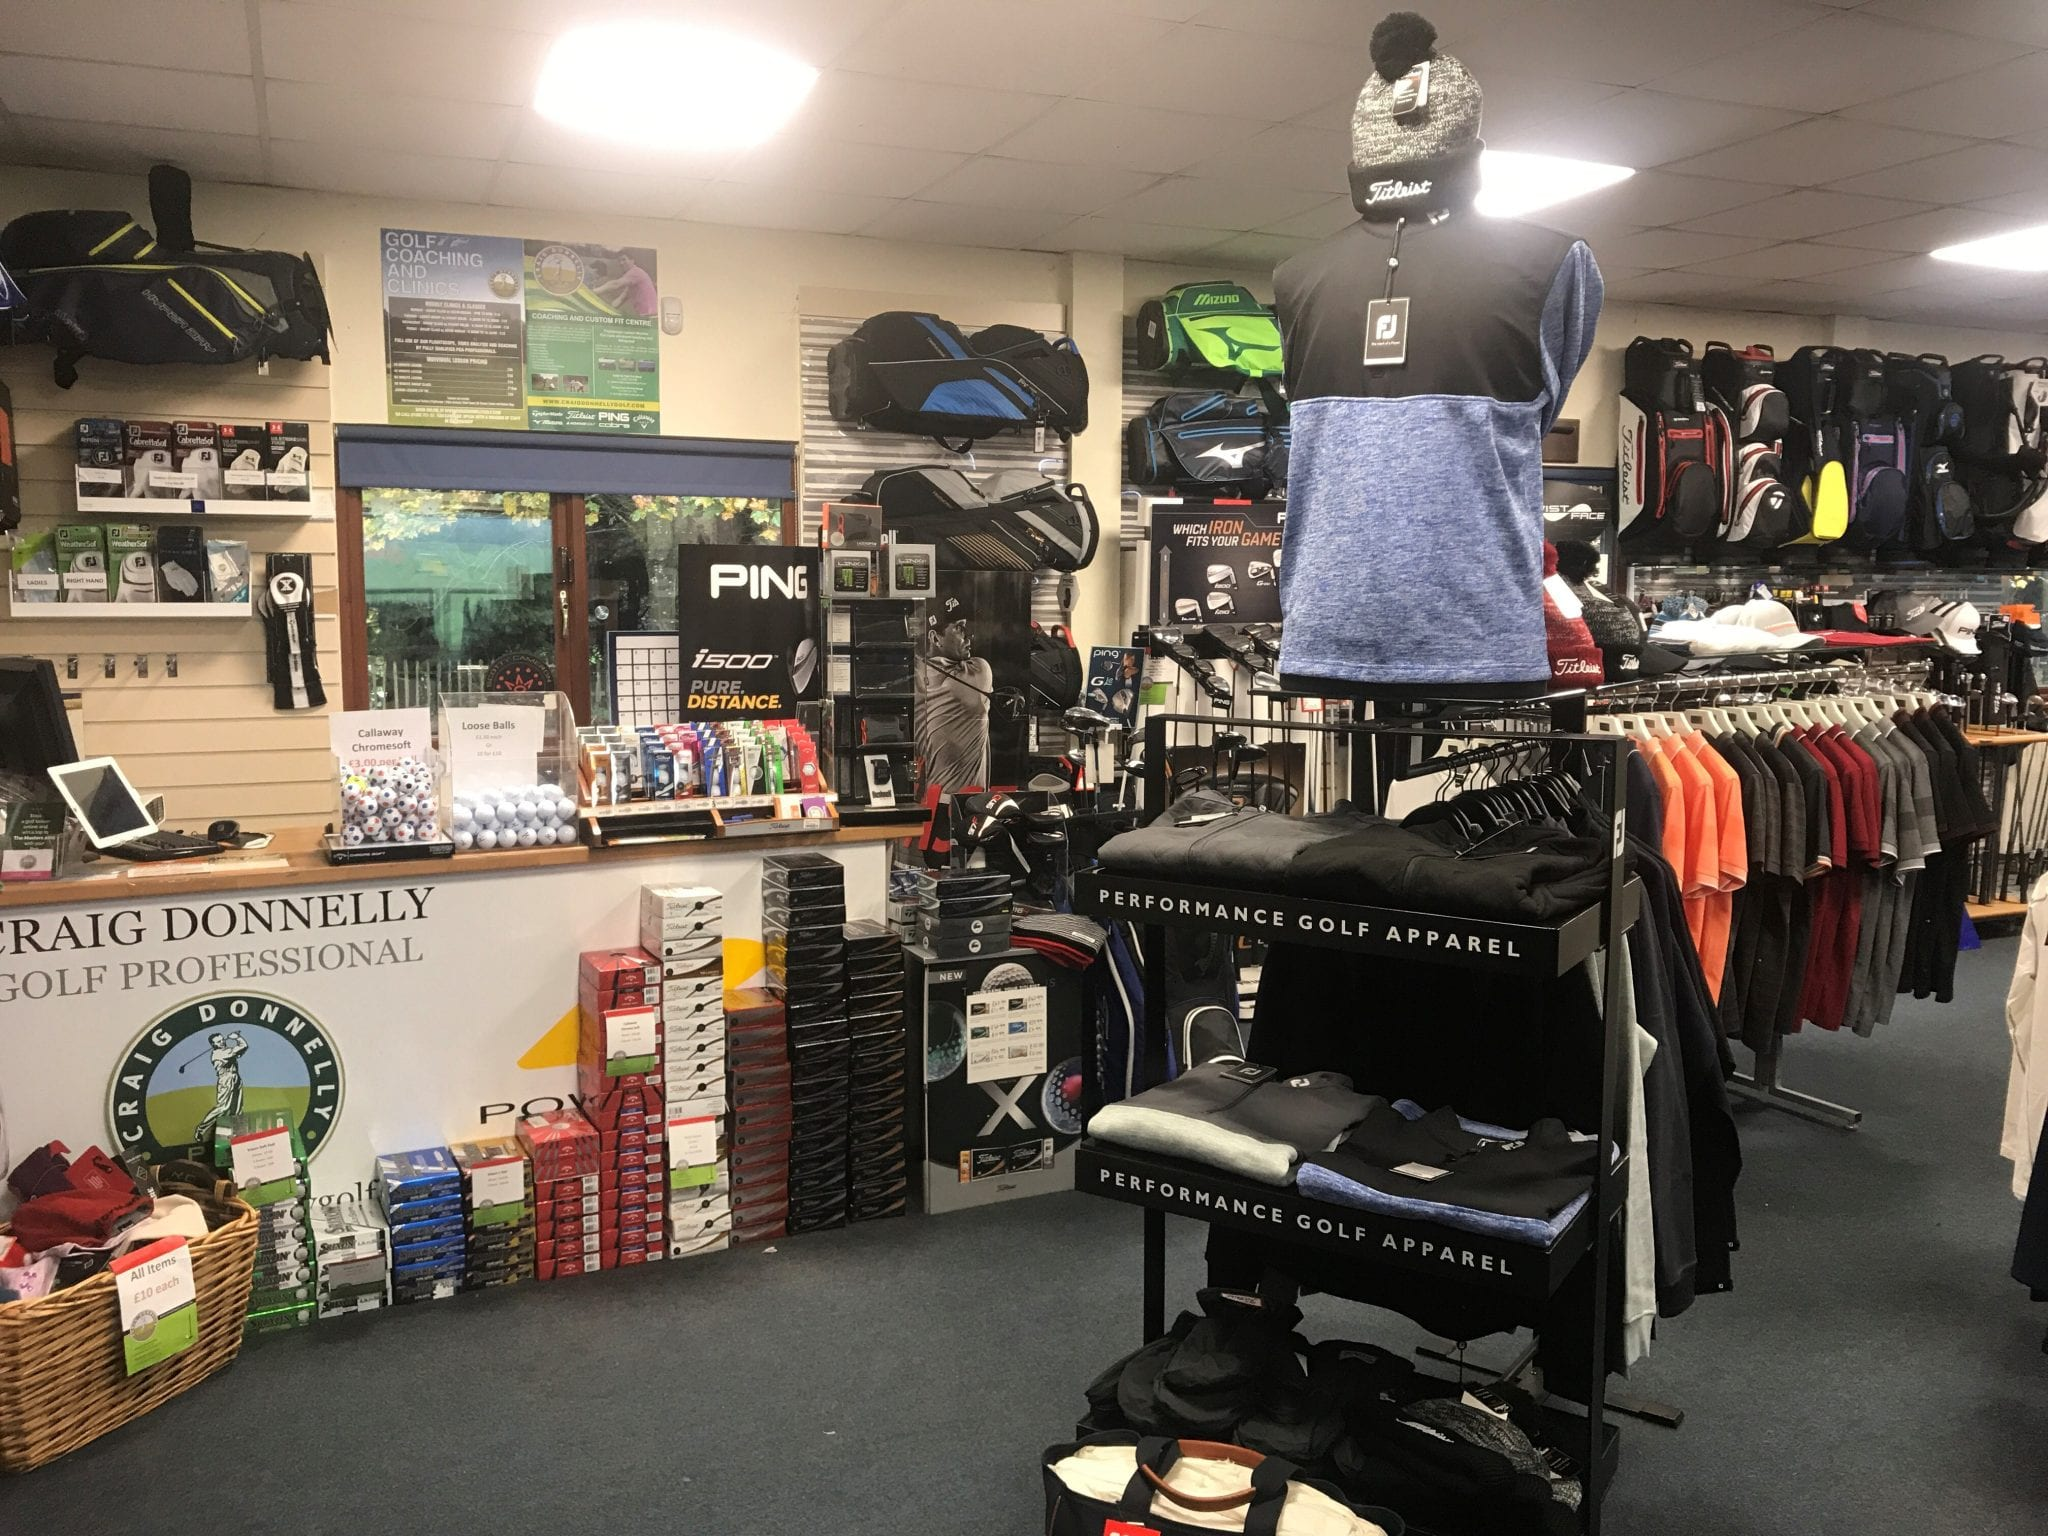 On-site Pro shop